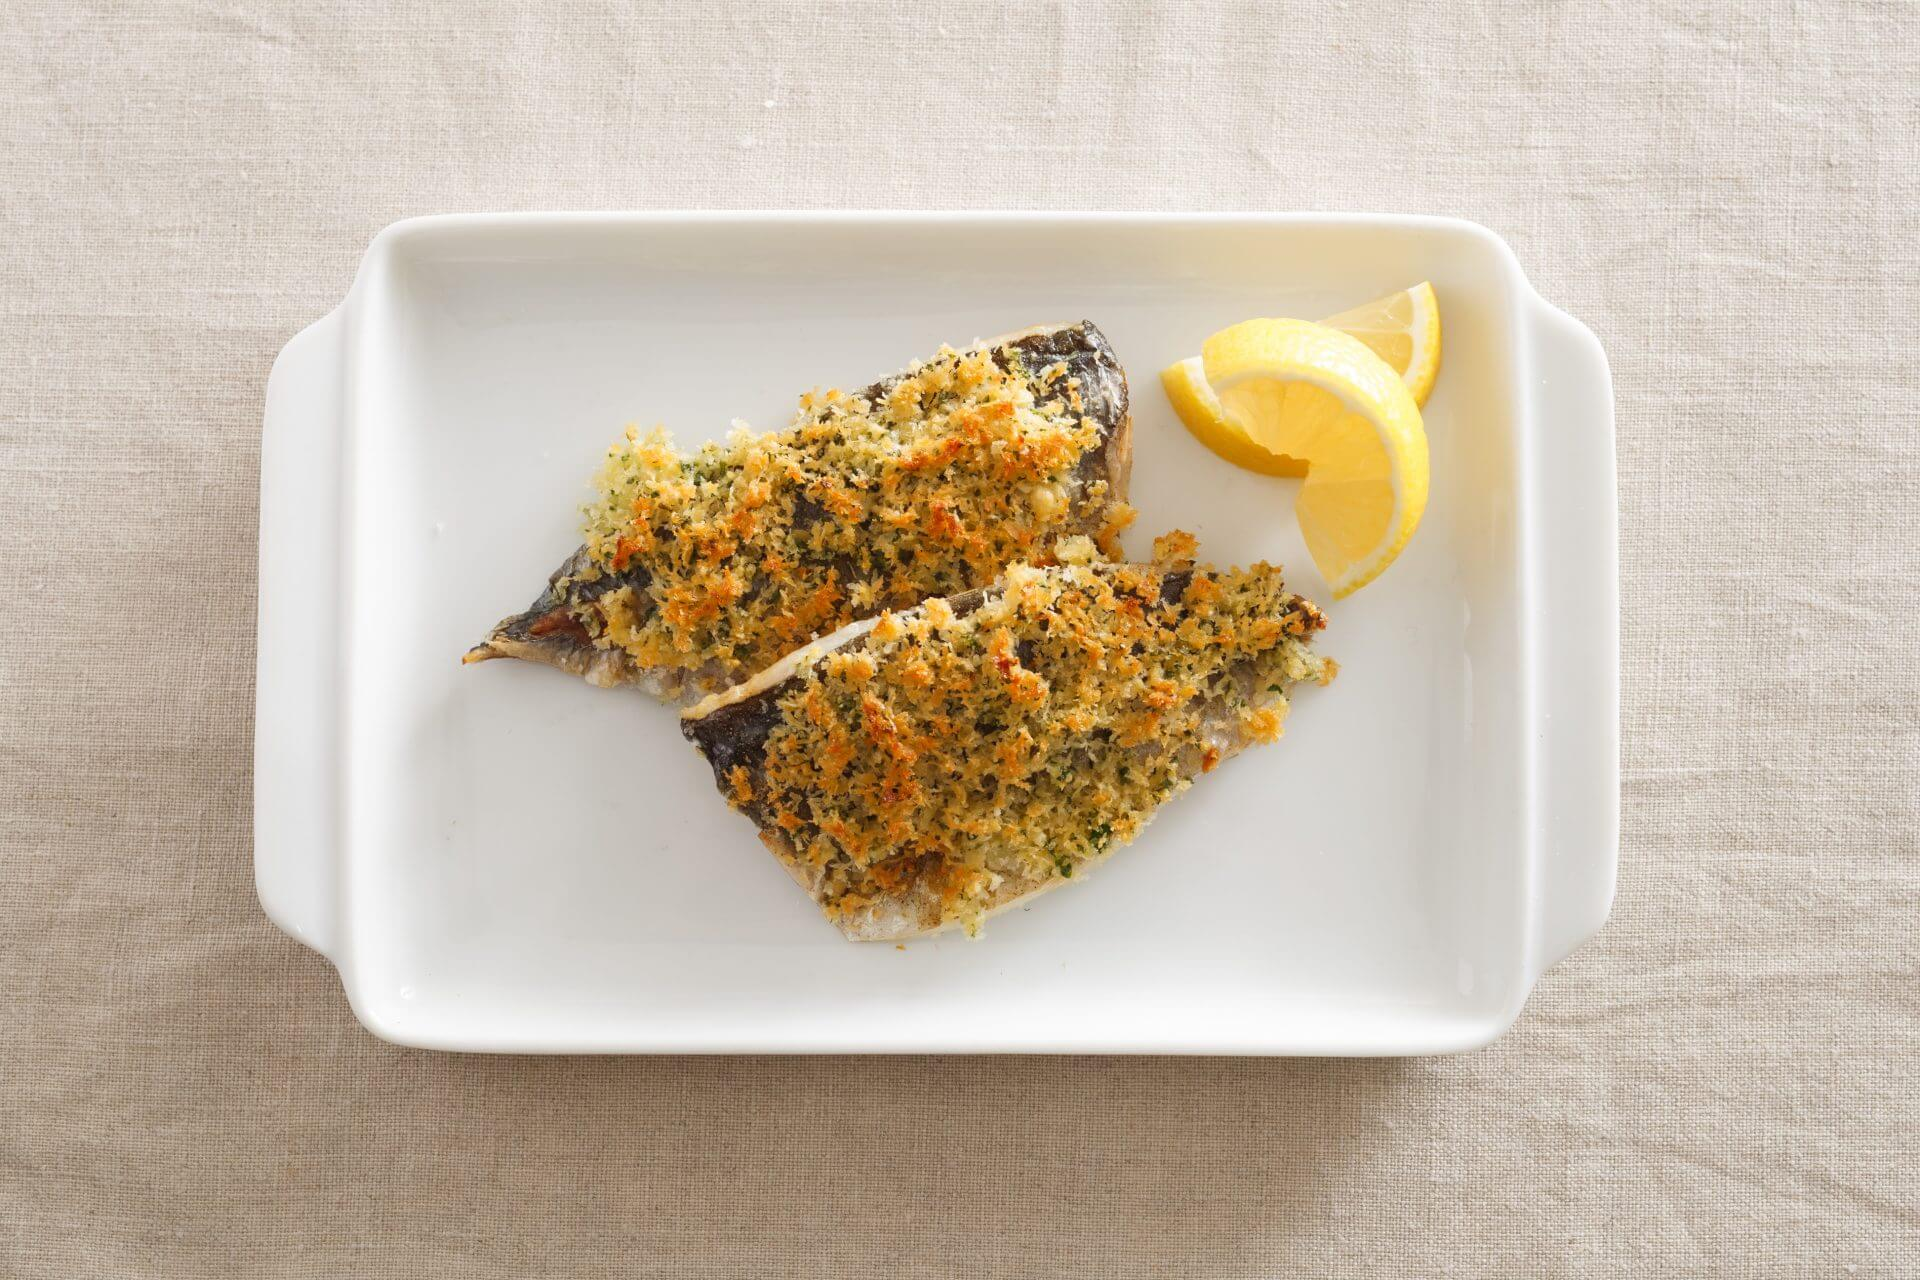 Grilled Horse Mackerel with Cheese